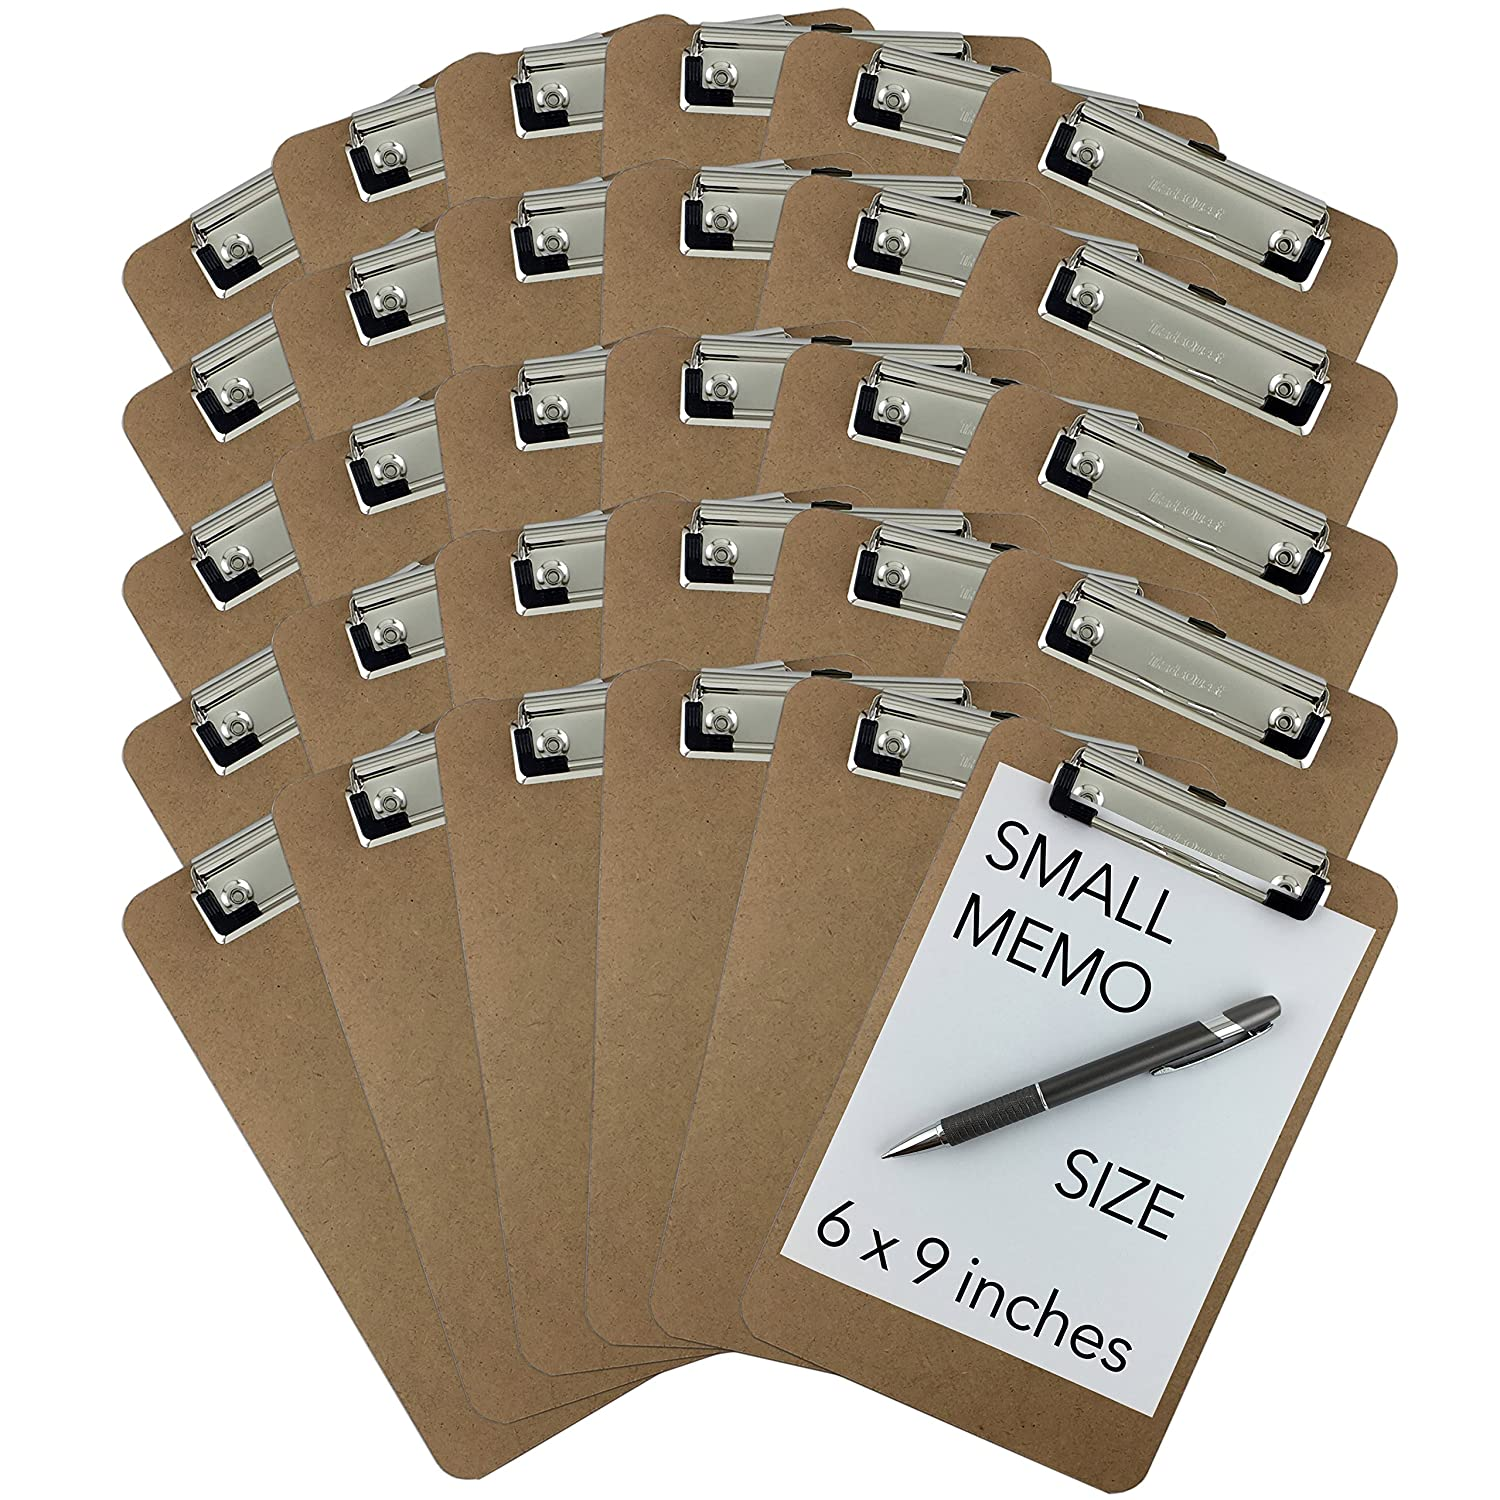 Trade Quest Memo Size 6 x 9 Clipboards Low Profile Clip Hardboard Pack of 30 Pen Not Included - For Scale Only